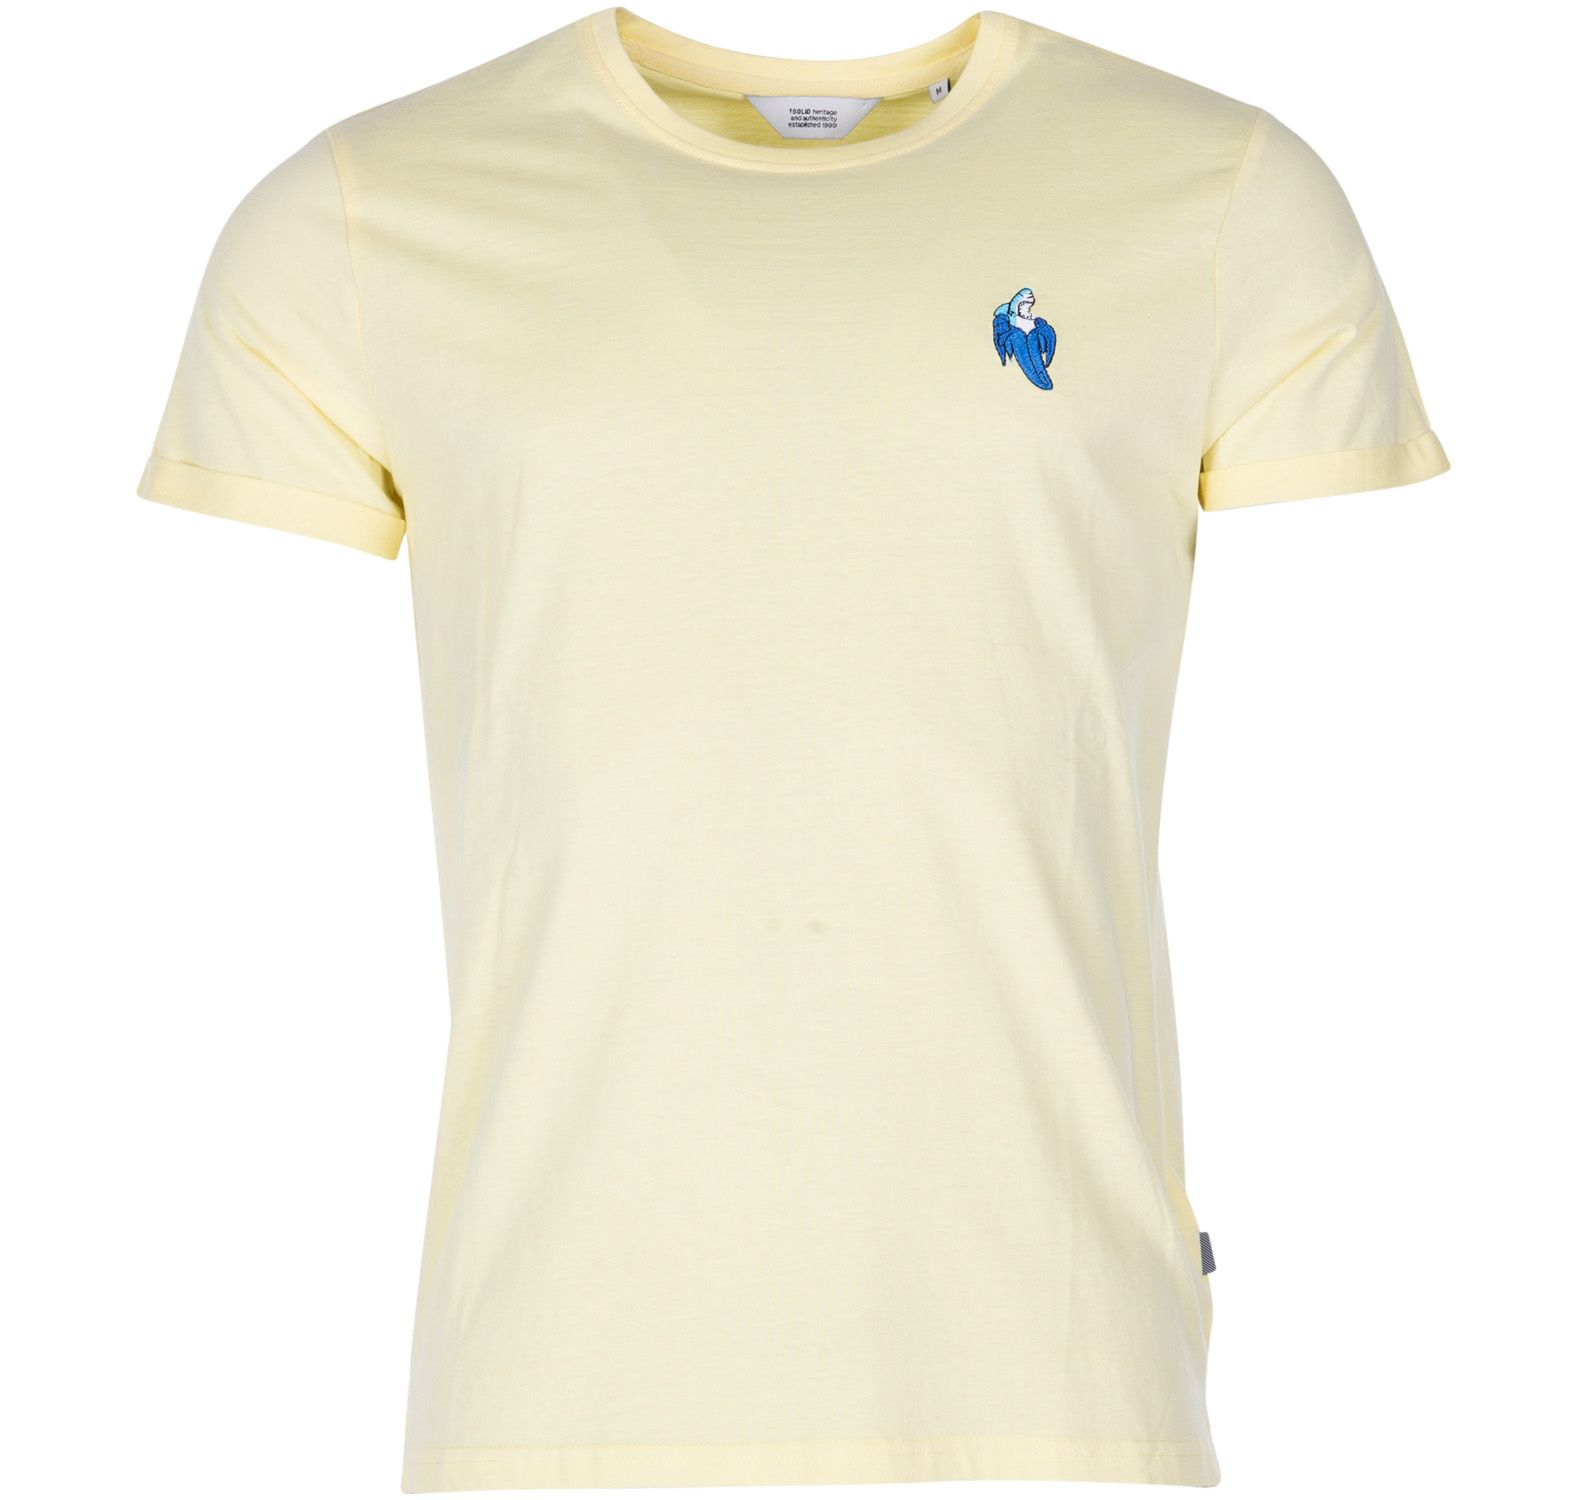 t-shirt - brenden, chardonnay, s, solid